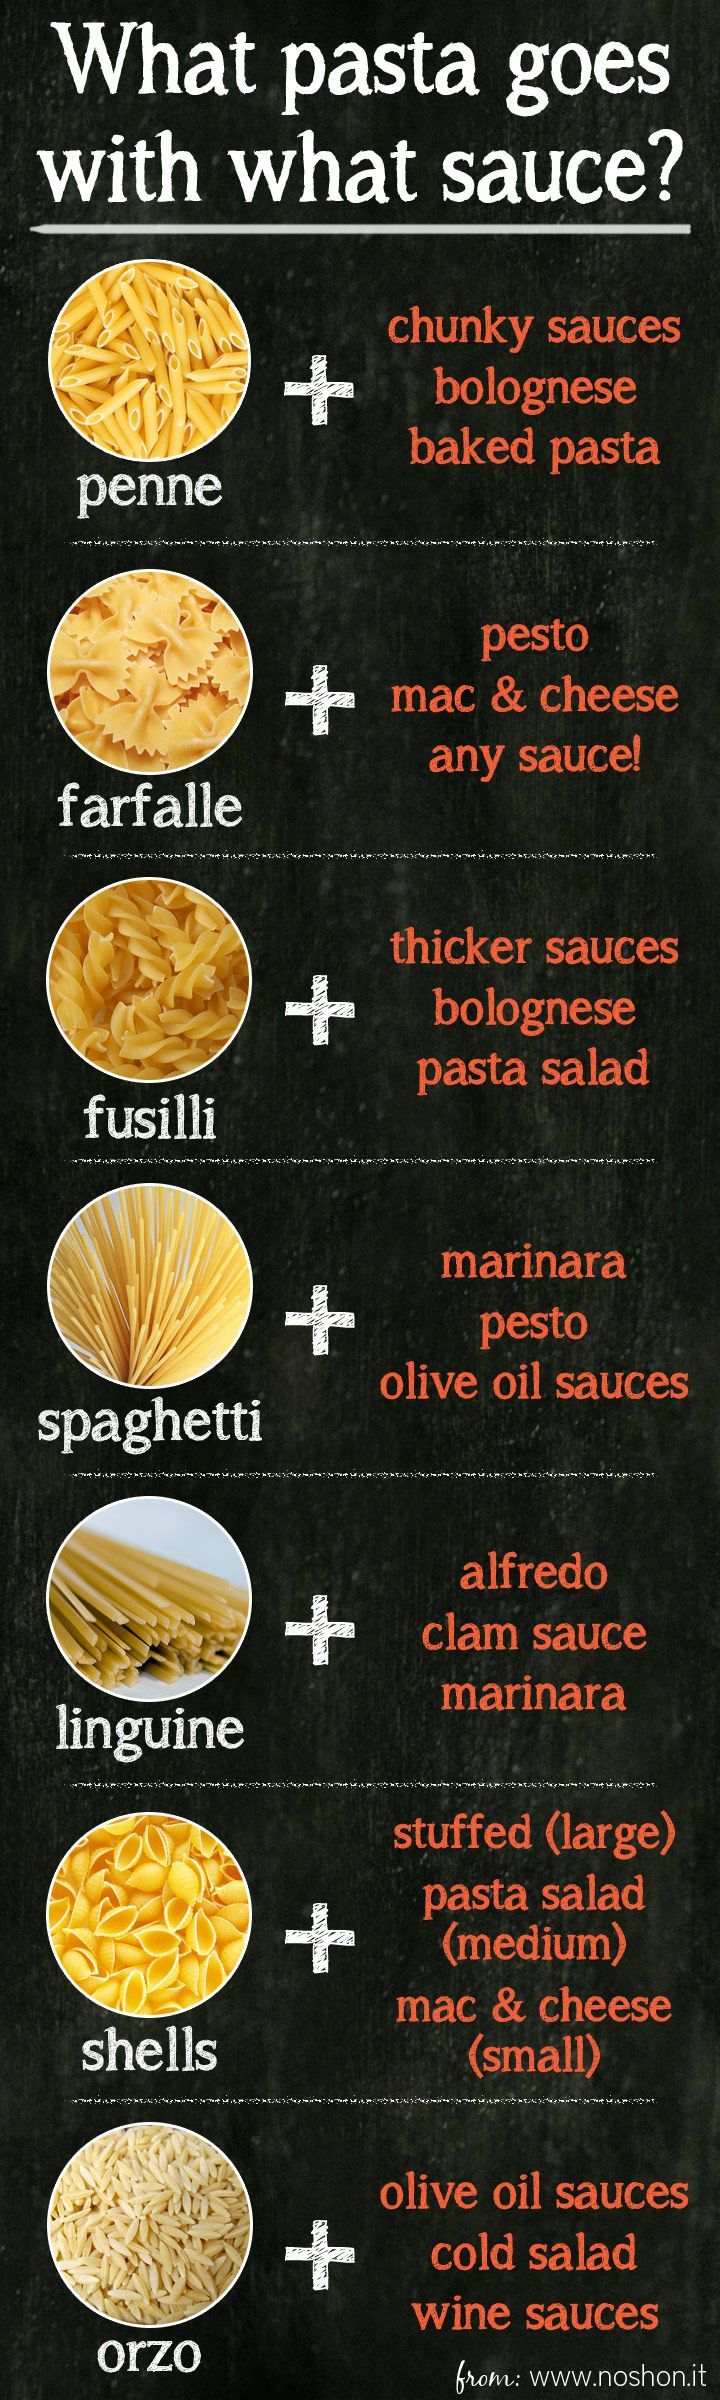 Gettin' Our Skinny On!: All About The Pasta!